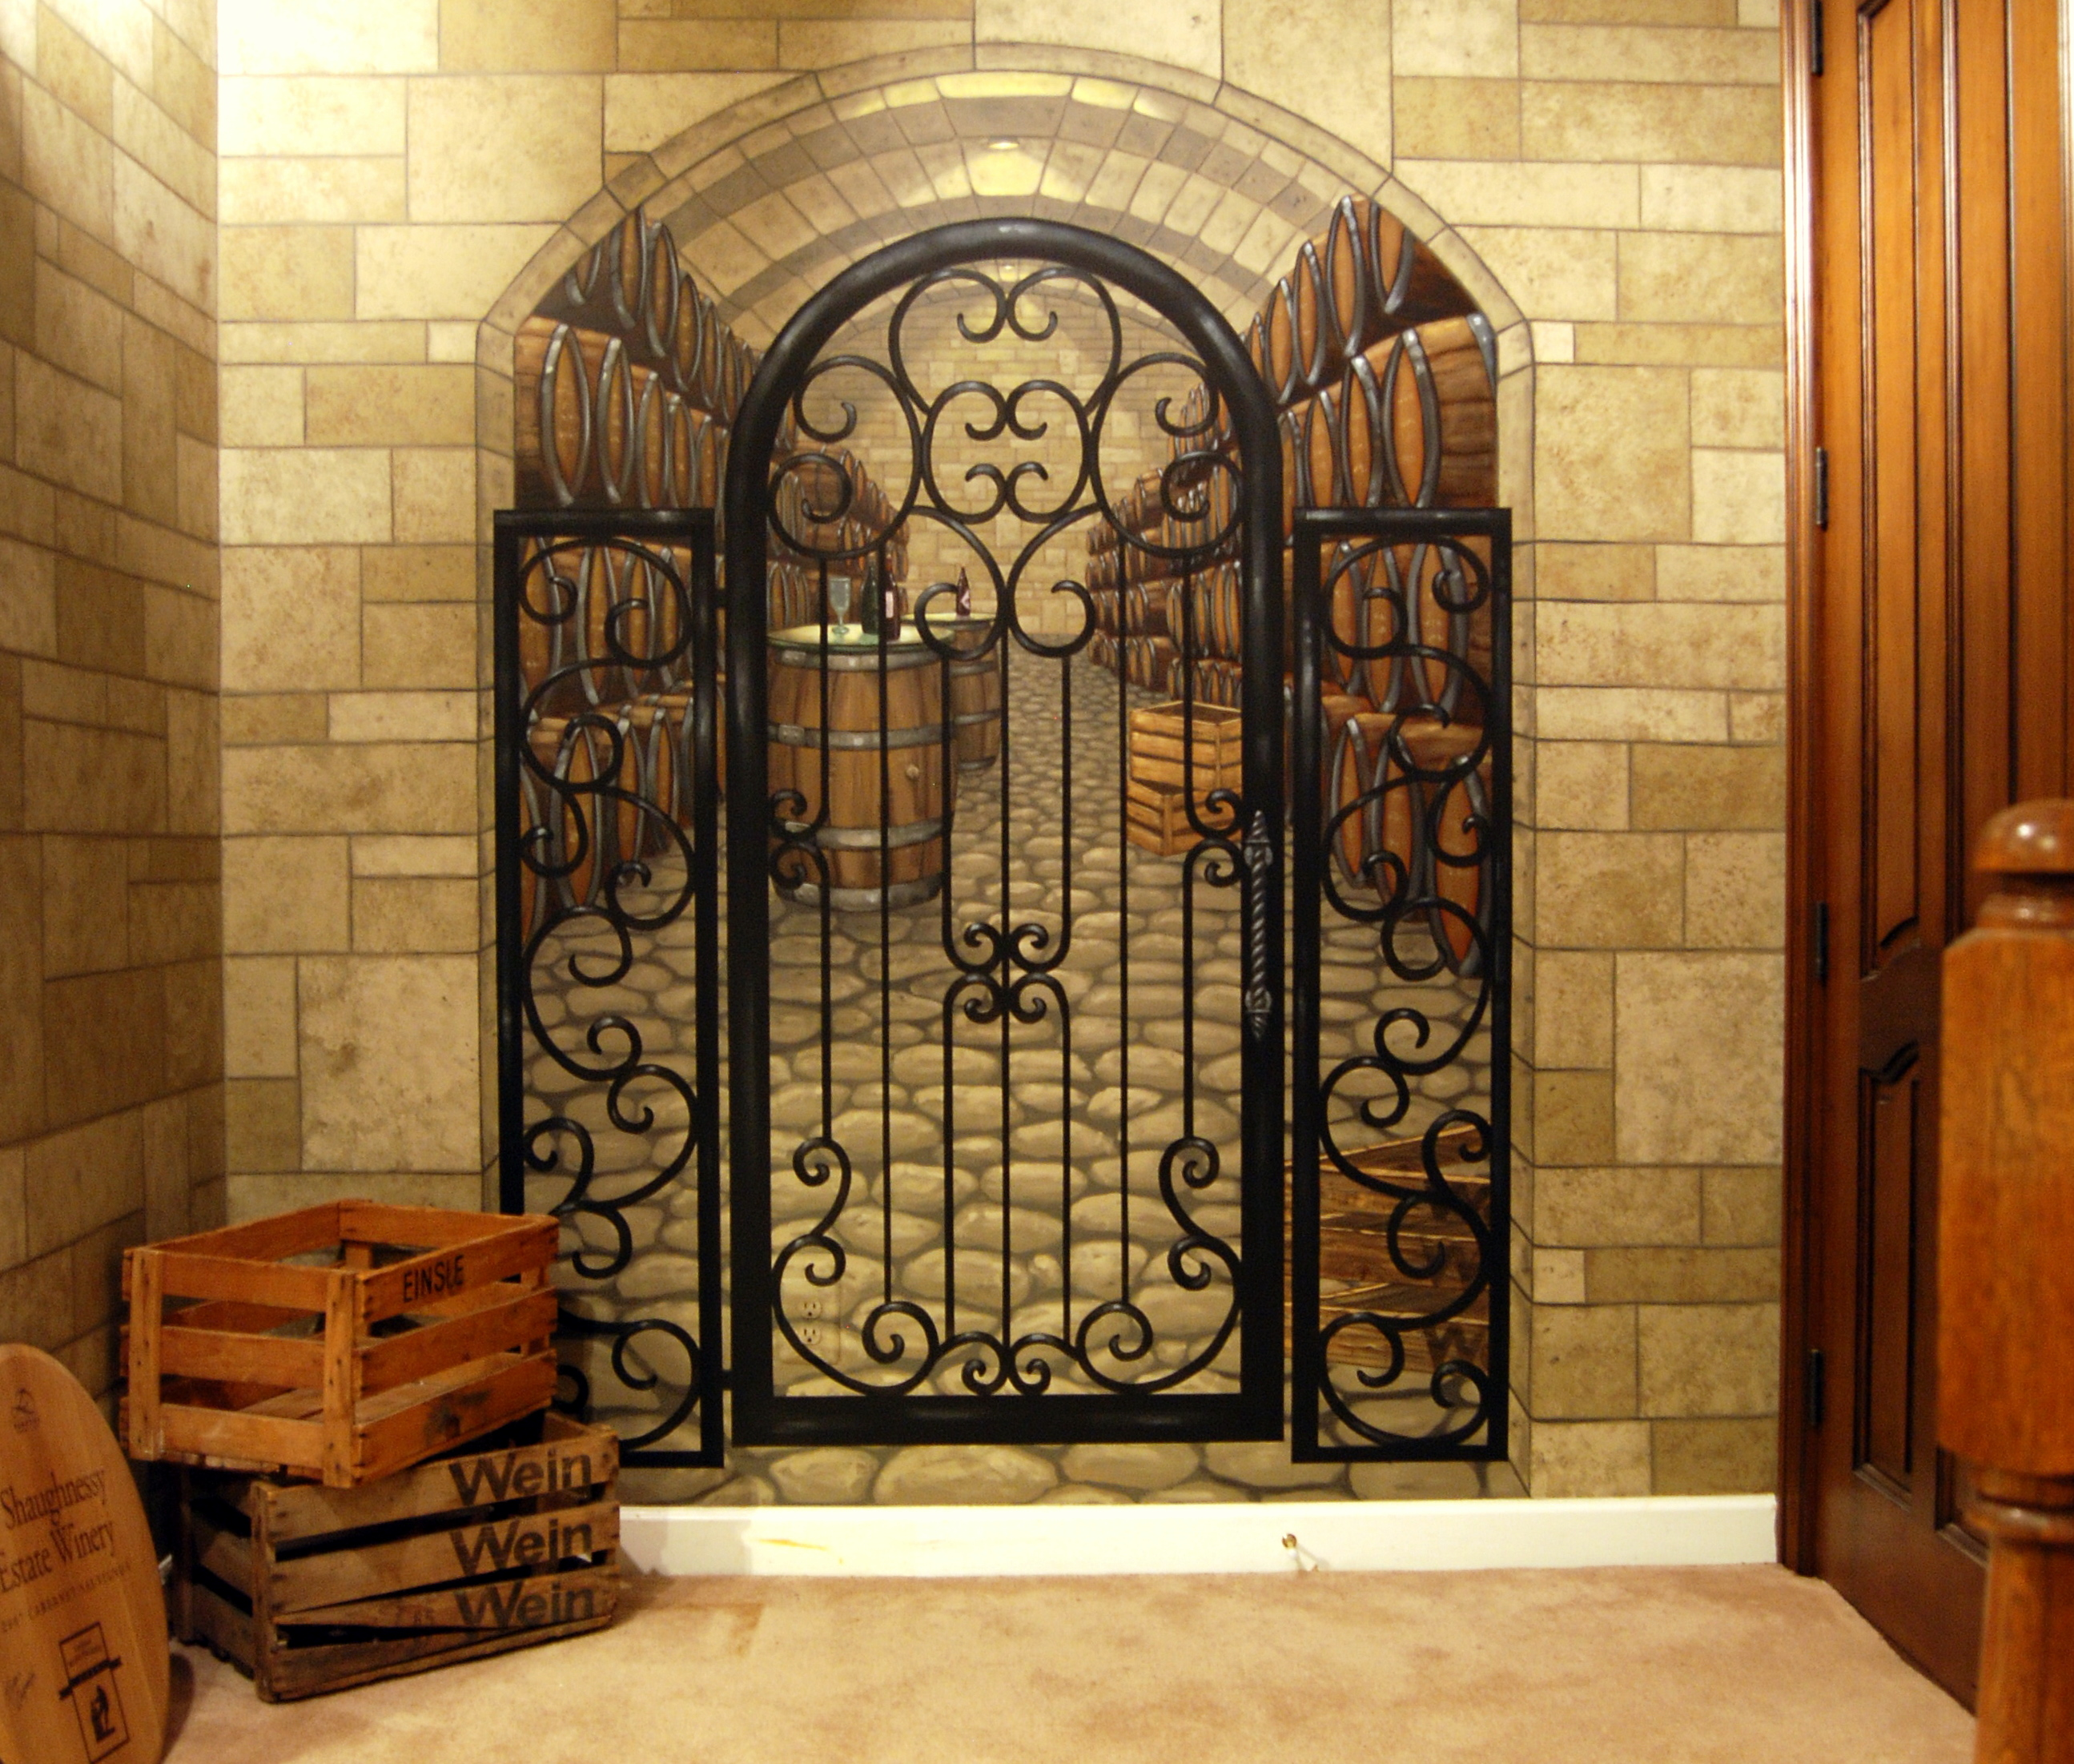 wine cellar mural by mural art llc by tom taylor at coroflot com h favorite qview full size